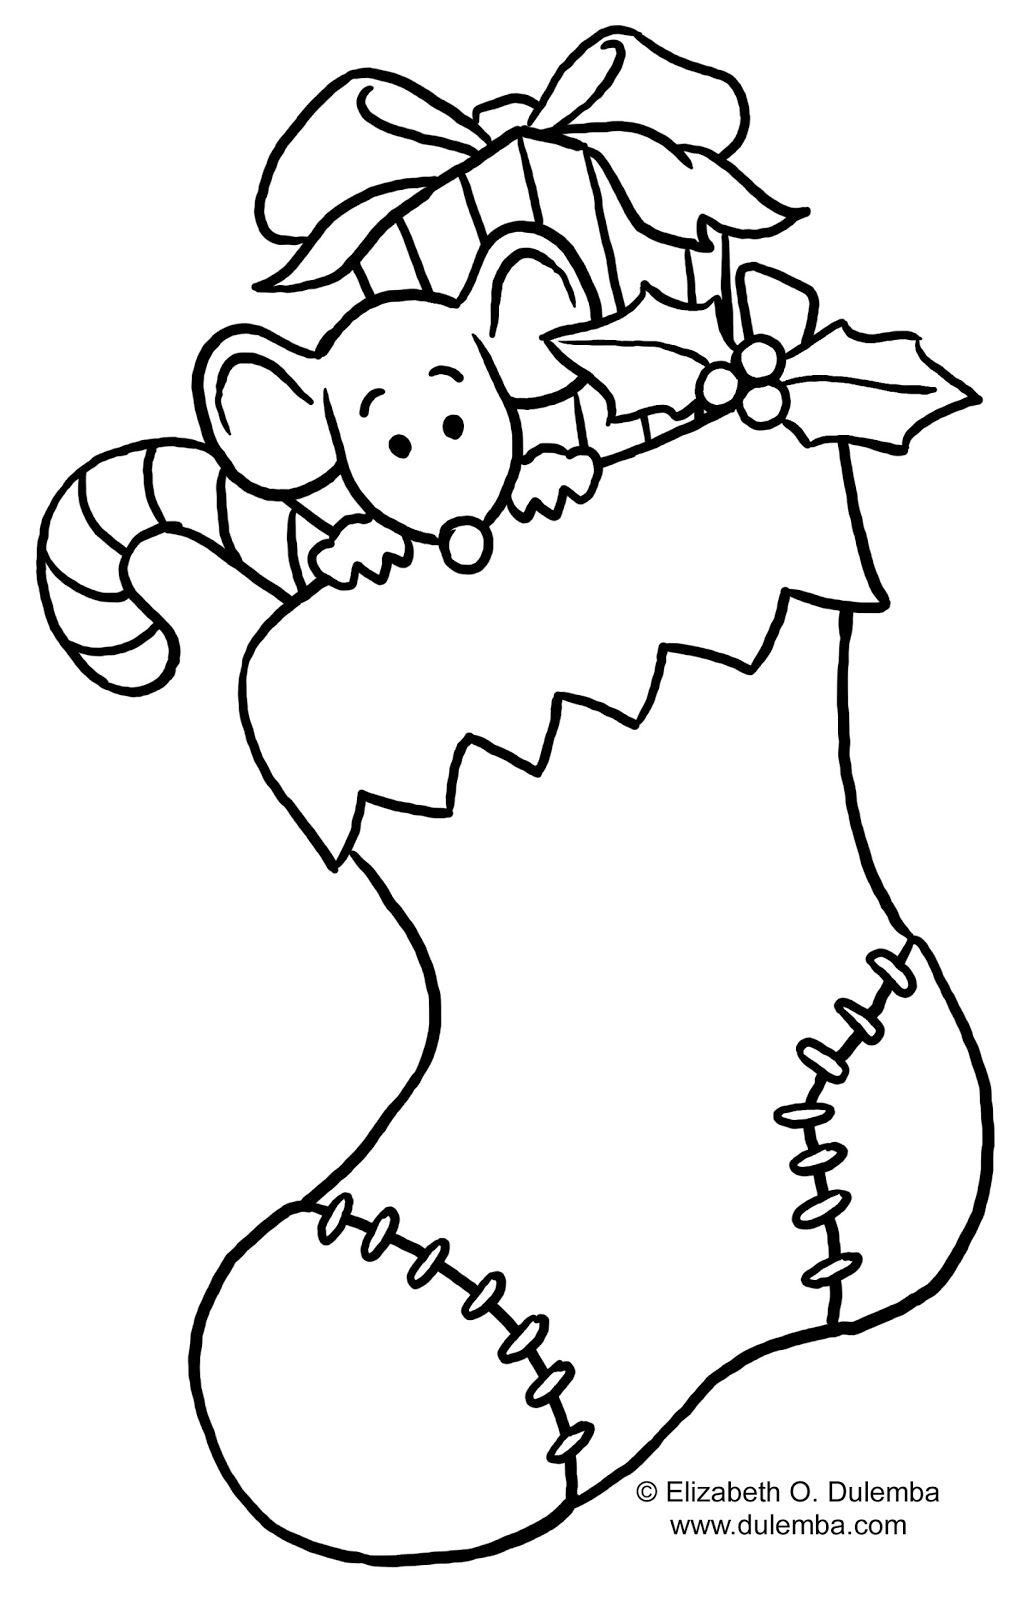 Spanish Colors Coloring Page Free Christmas Coloring Pages Christmas Coloring Sheets Printable Christmas Coloring Pages